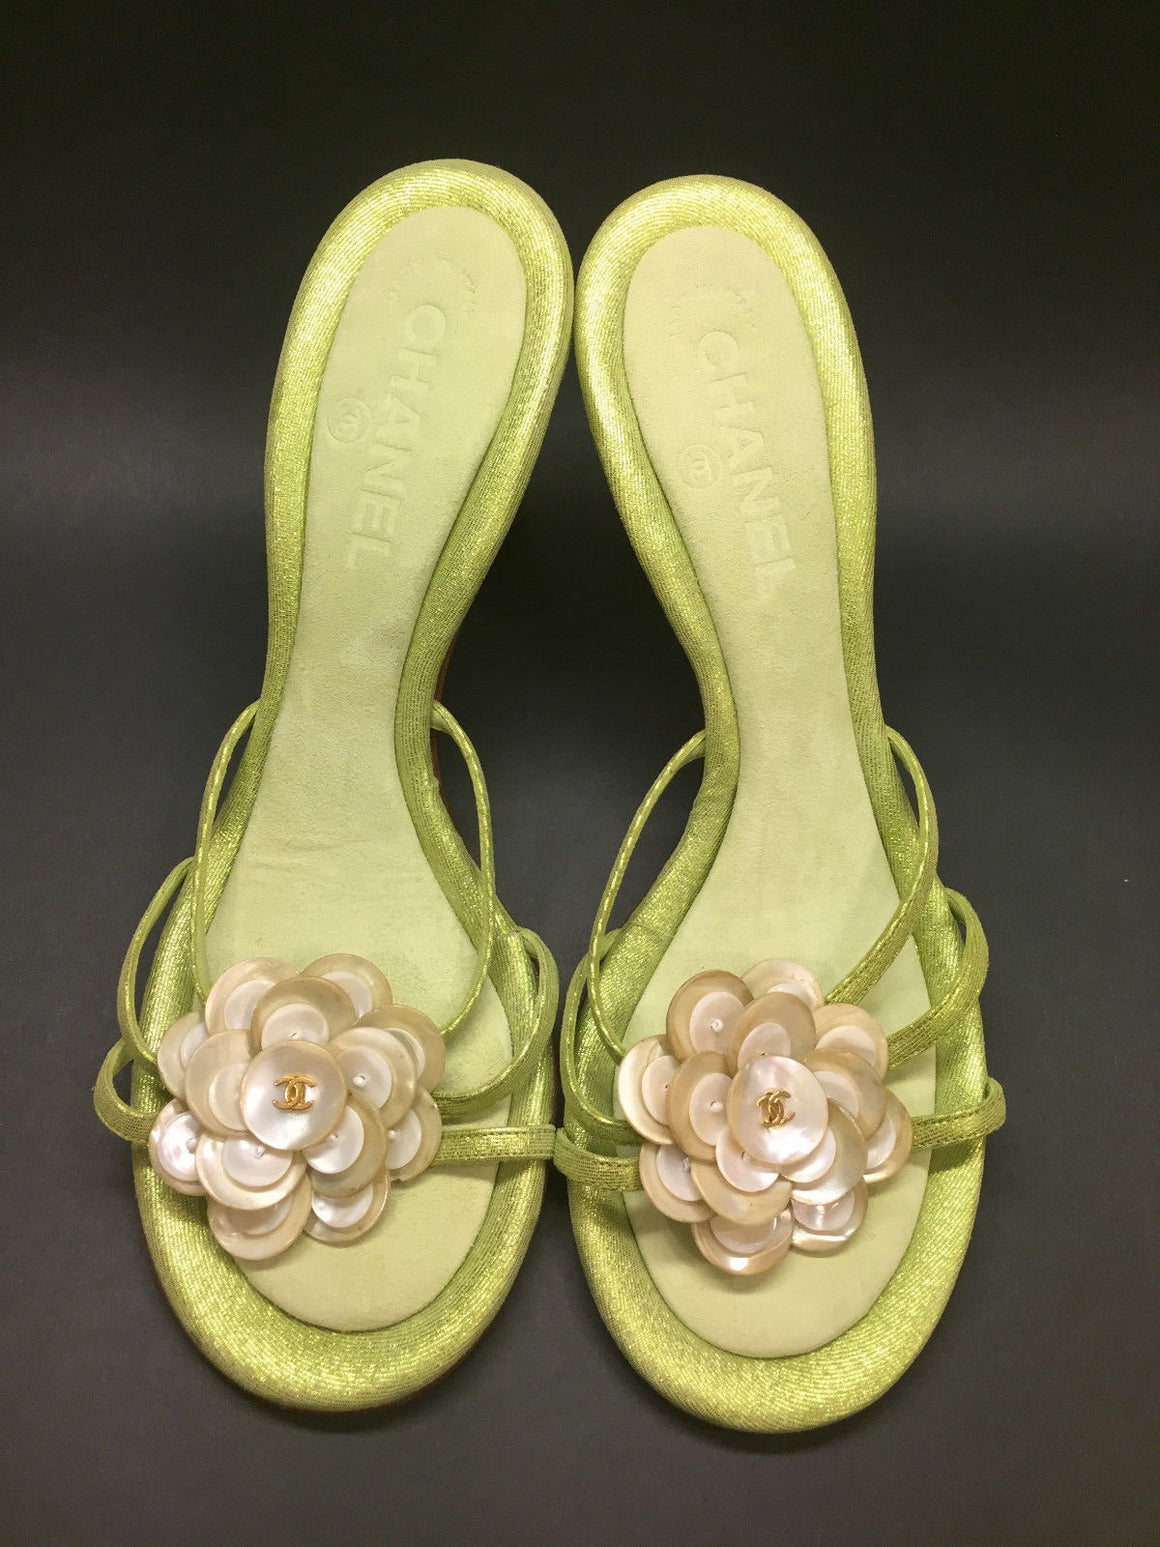 CHANEL  Vintage - New Iridescent-Green Suede Mother-of-Pearl Camellia Heel Mules Sandals Size: 39.5 / 9.5